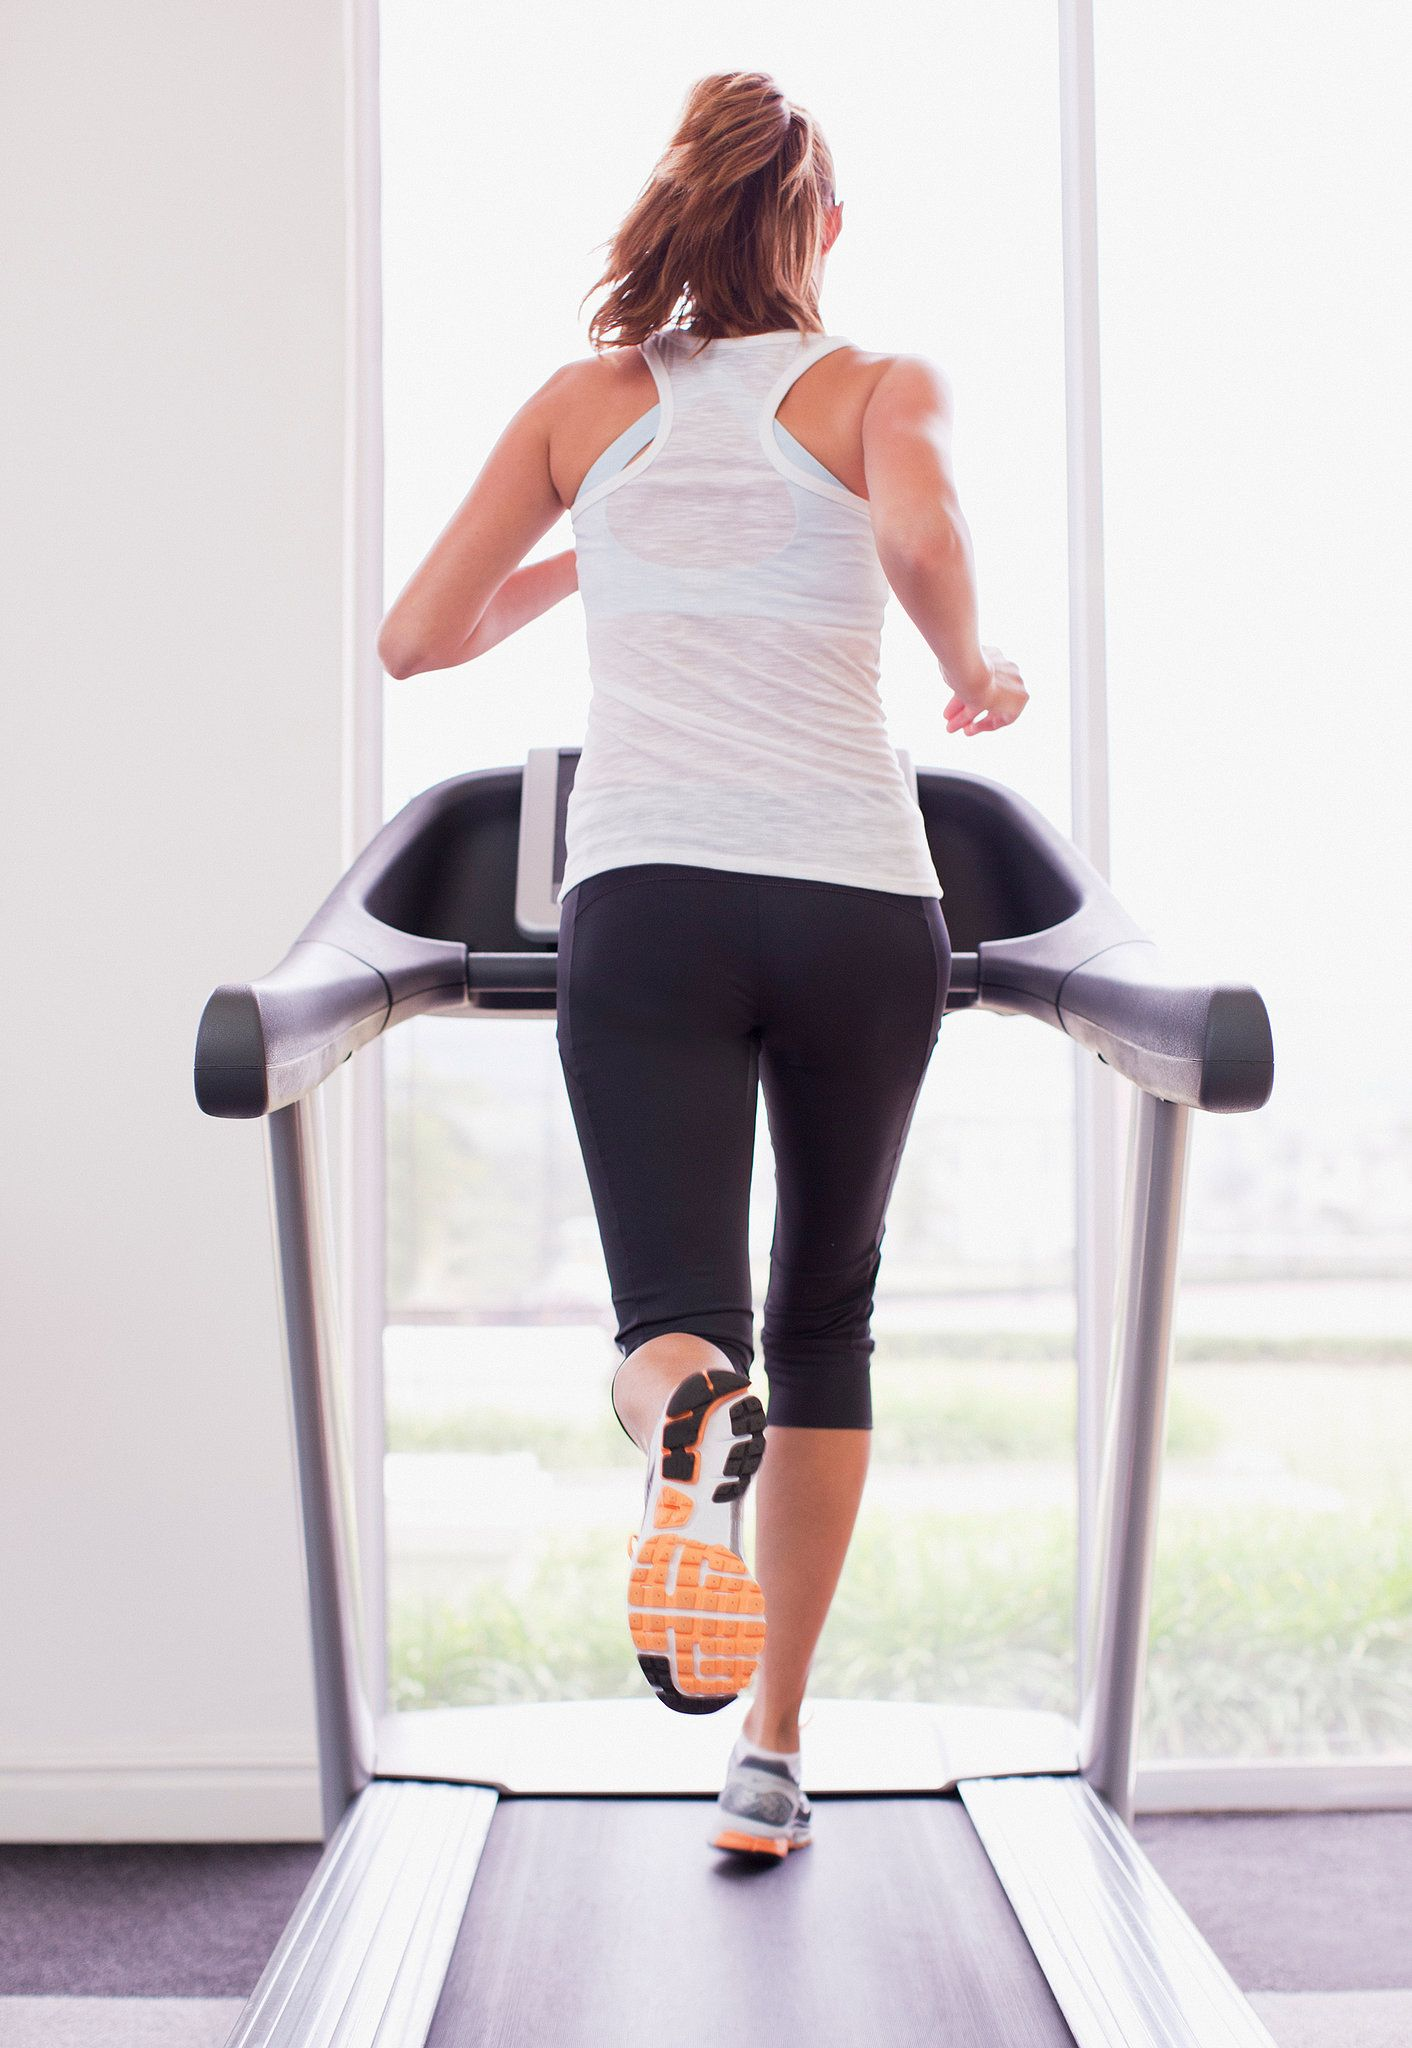 A Treadmill Interval Workout For Beginners | 20 minute treadmill ...